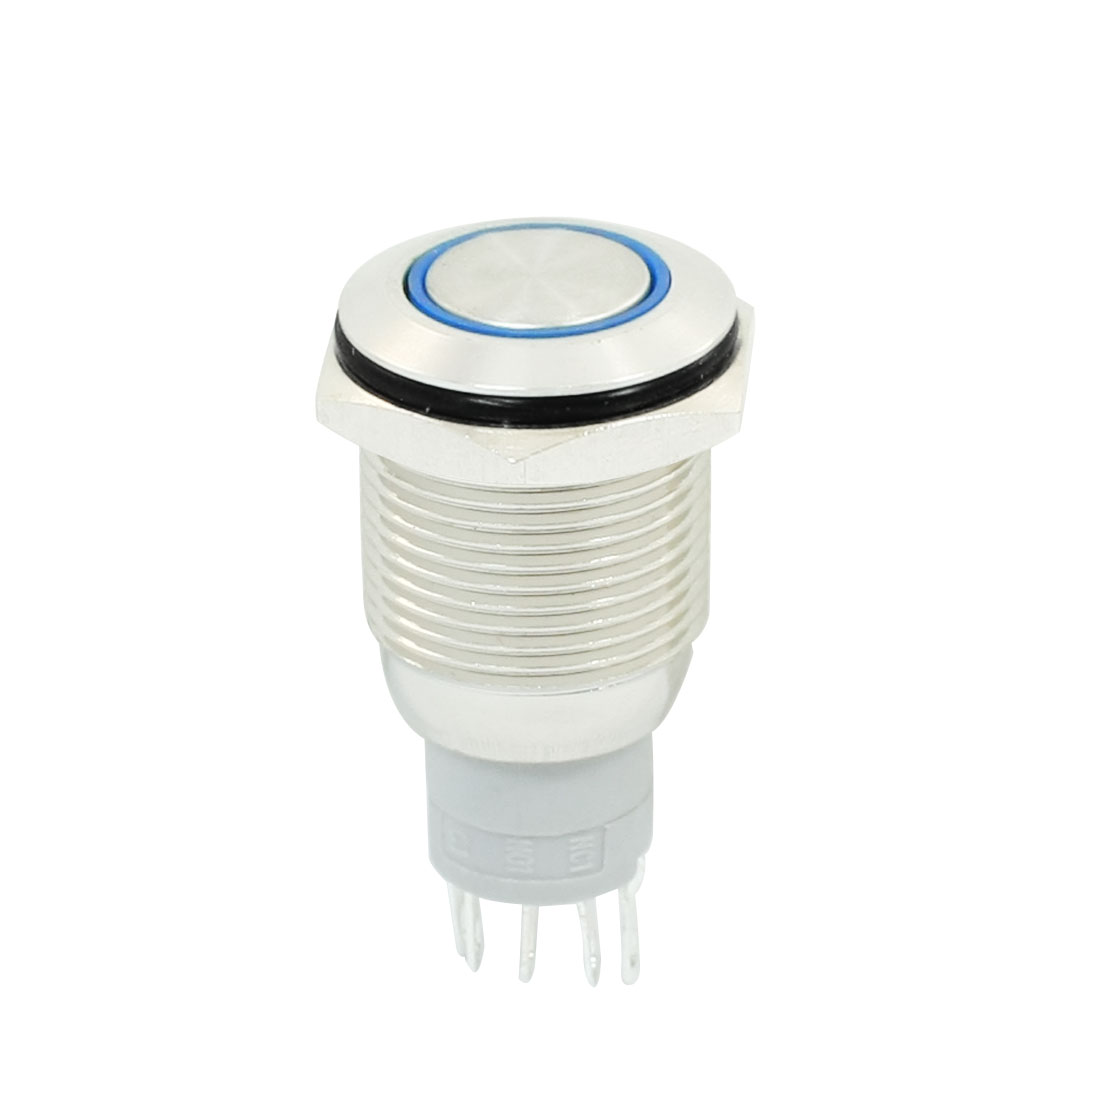 16mm-Dia-Mount-Self-Locking-Blue-LED-Stainless-Steel-Button-Switch-w-Seal-Ring